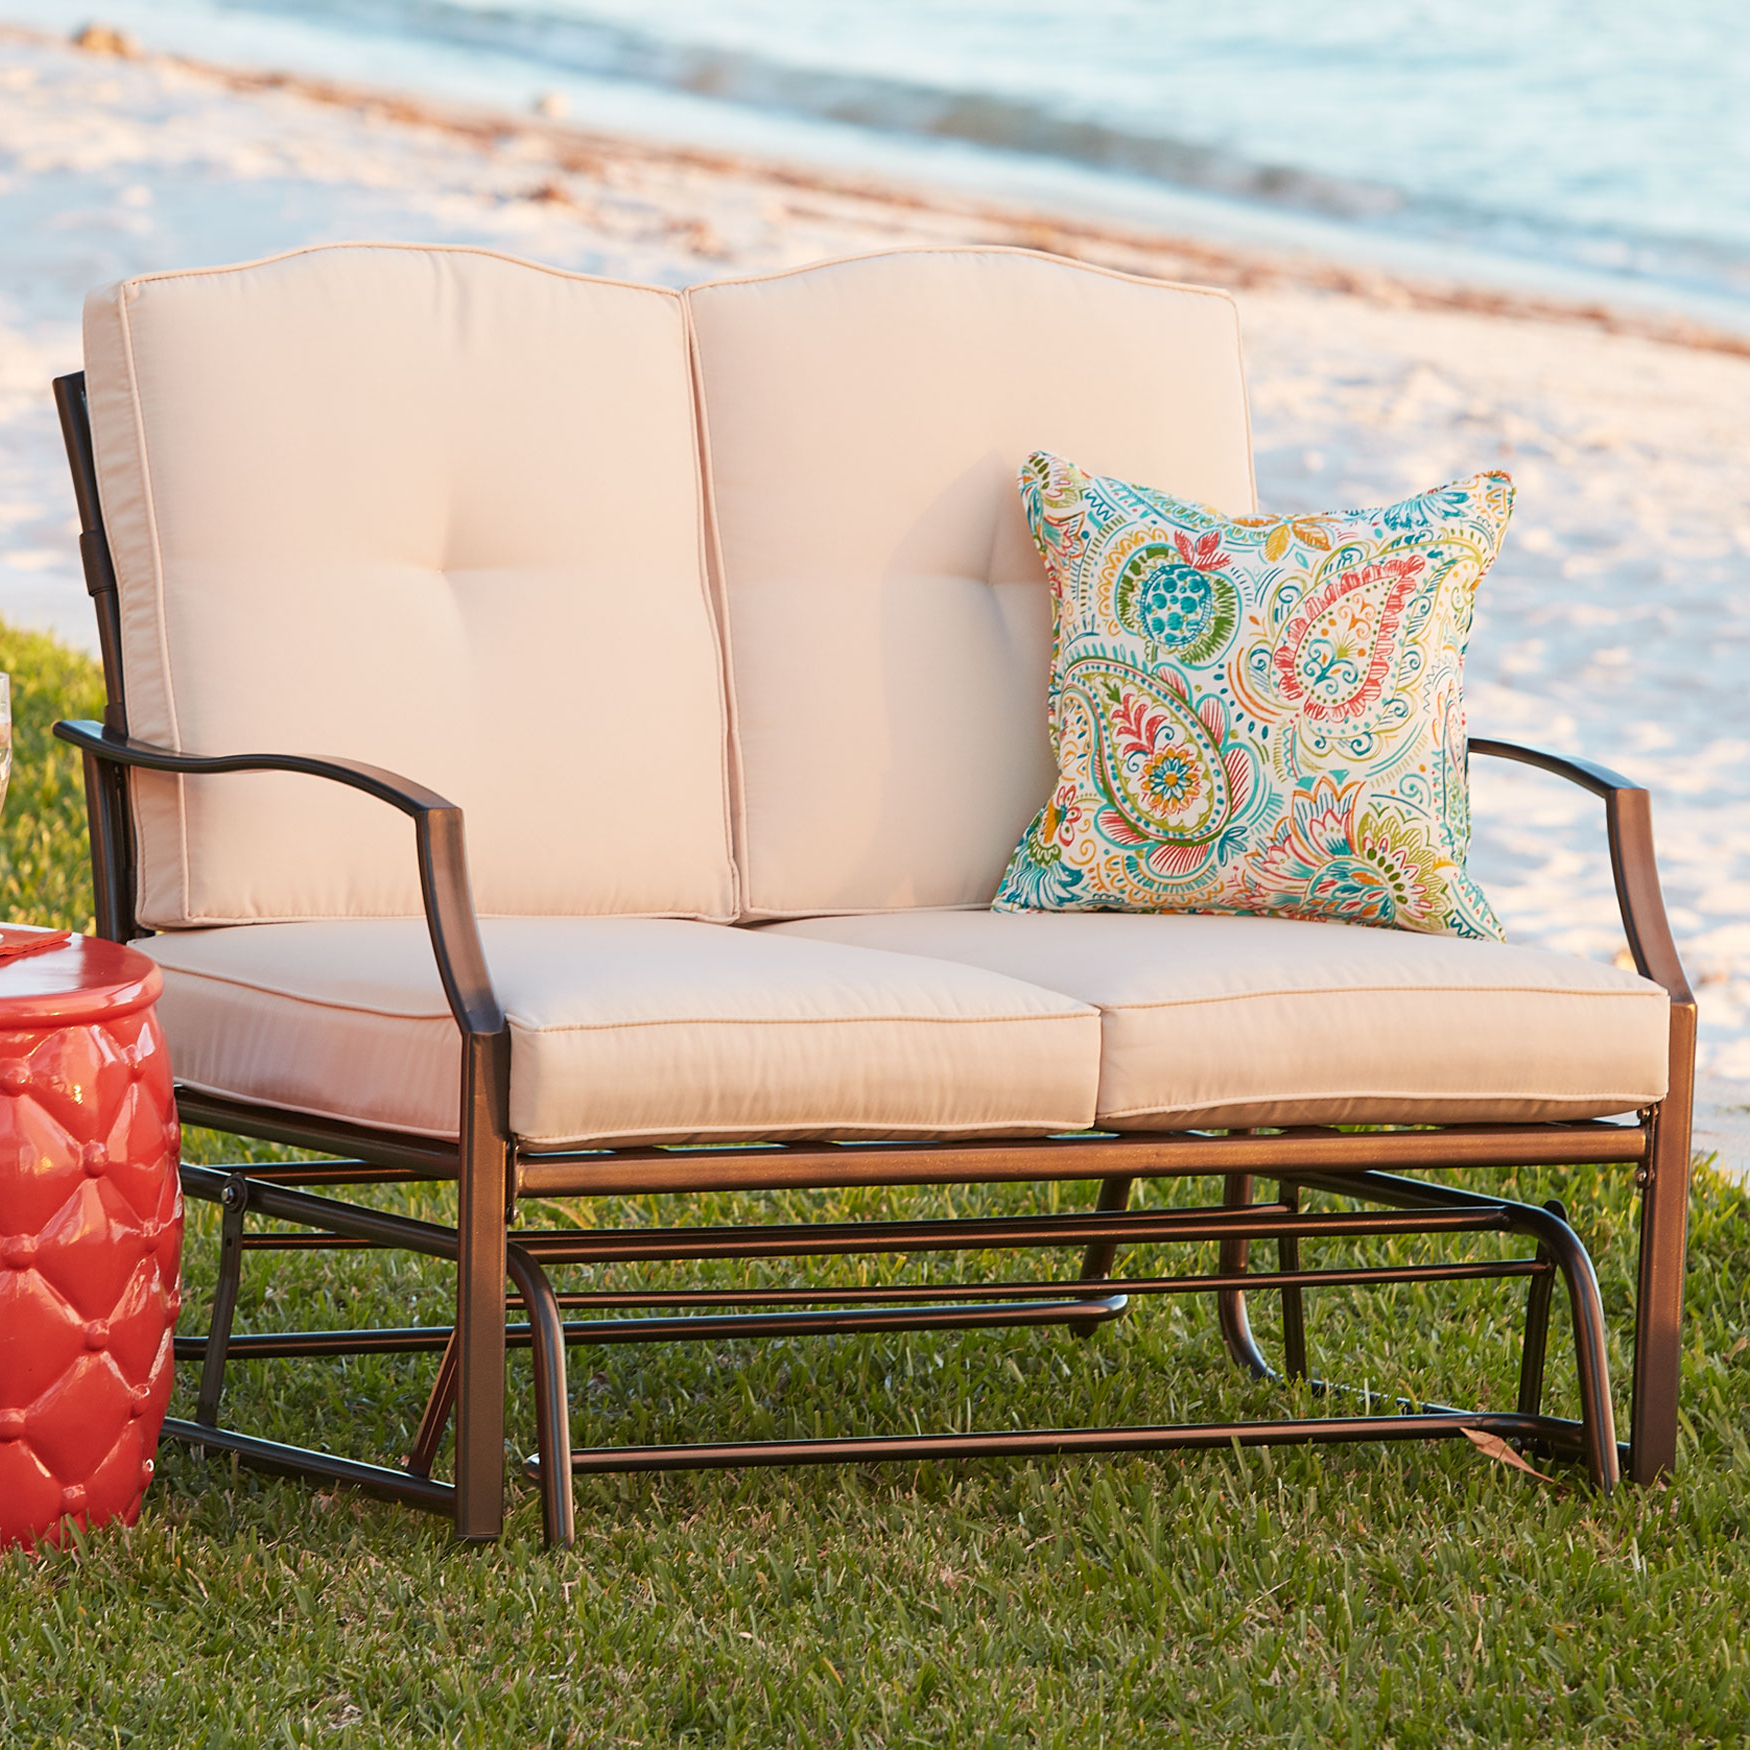 Loveseat Glider Pertaining To Latest Outdoor Loveseat Gliders With Cushion (View 17 of 25)